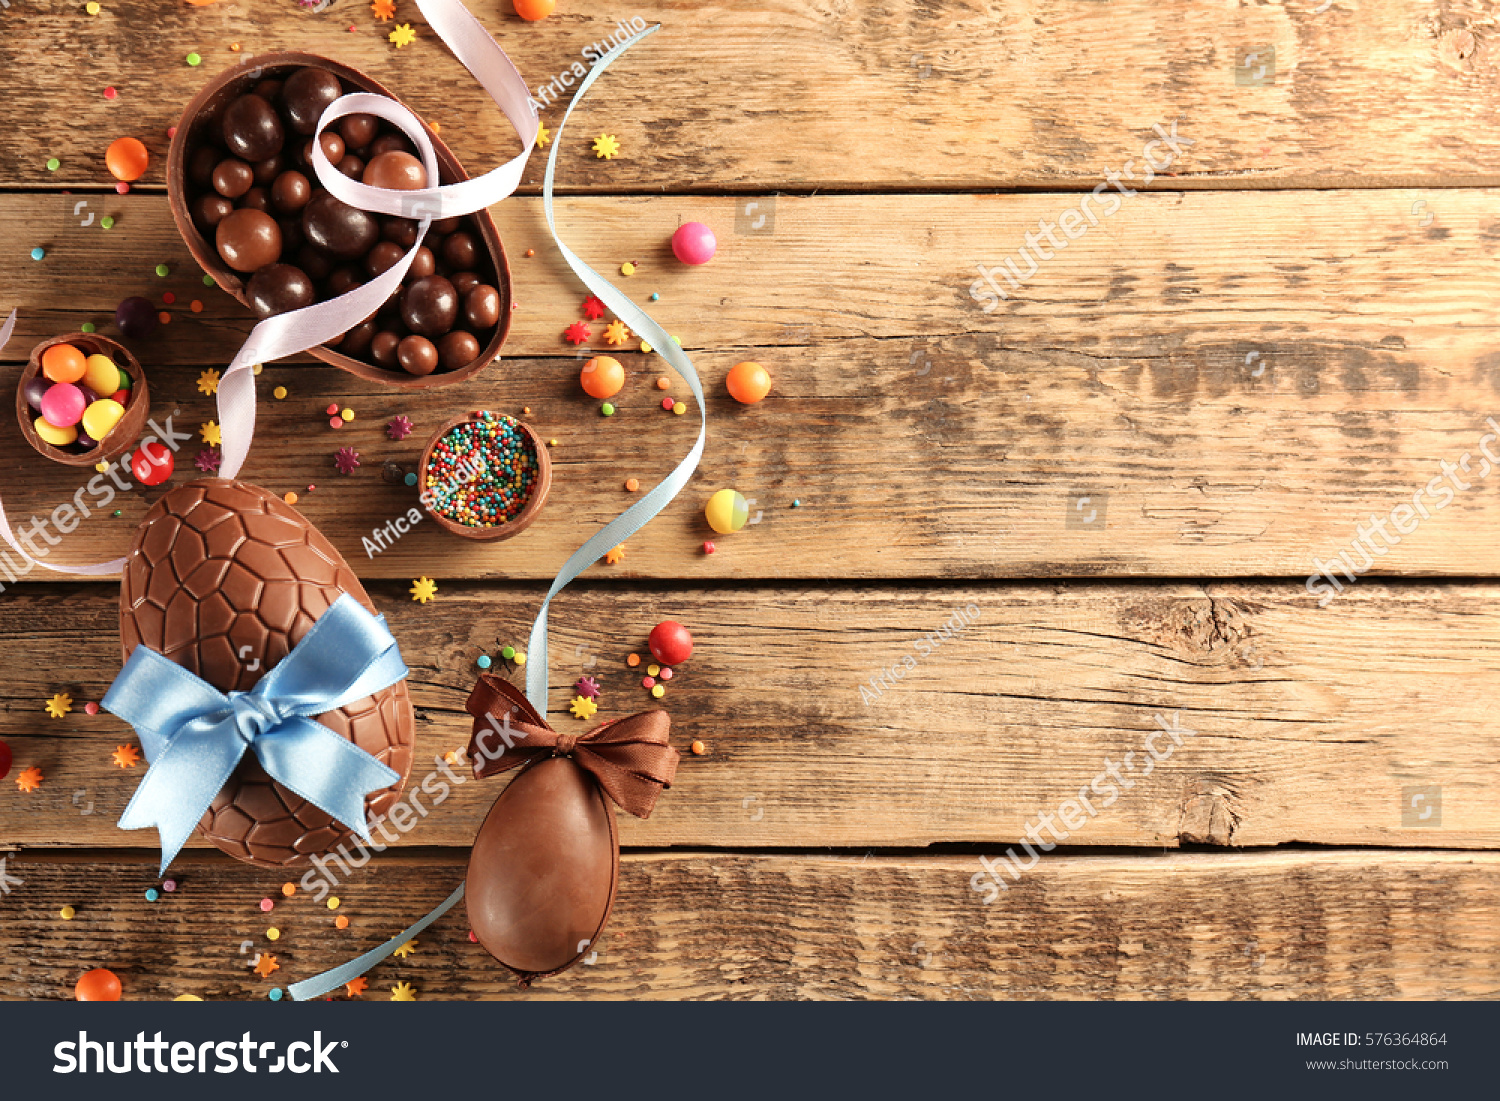 Chocolate Easter eggs with color ribbon bows on wooden background #576364864